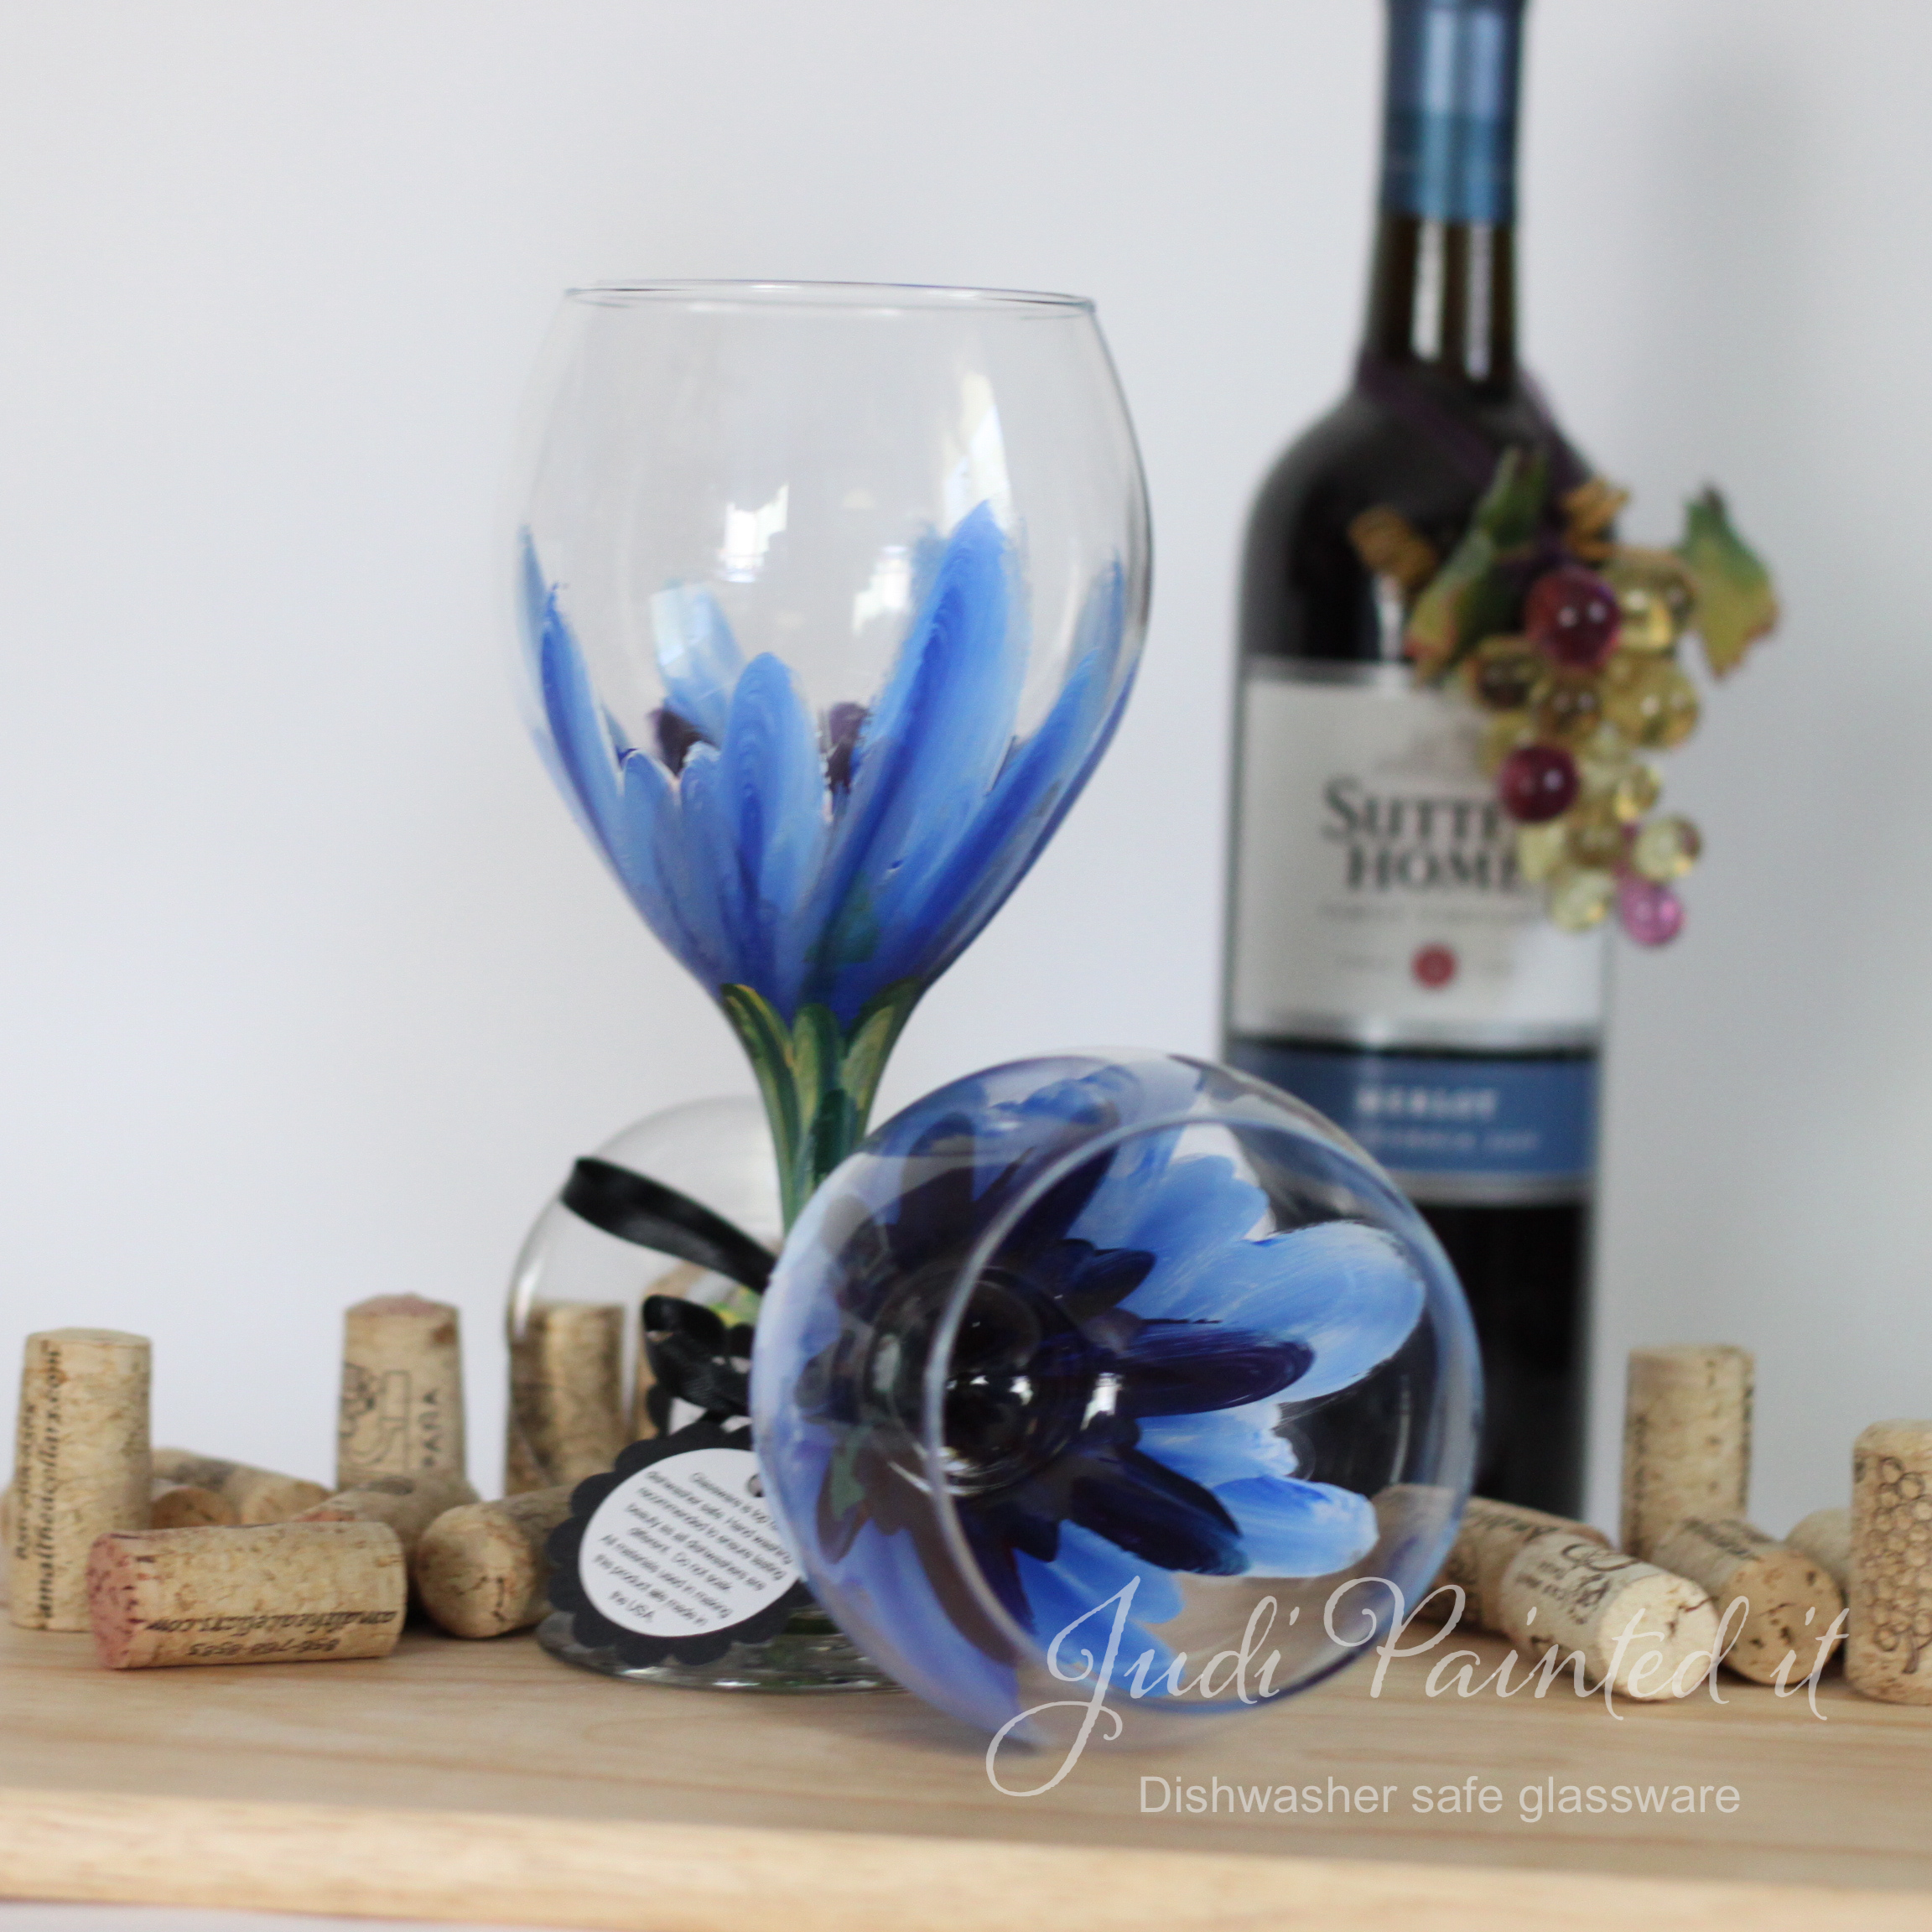 Hand Painted Wine Glasses Wholesale Blue Hibiscus Wine Glass Hand Painted By Judi Painted It